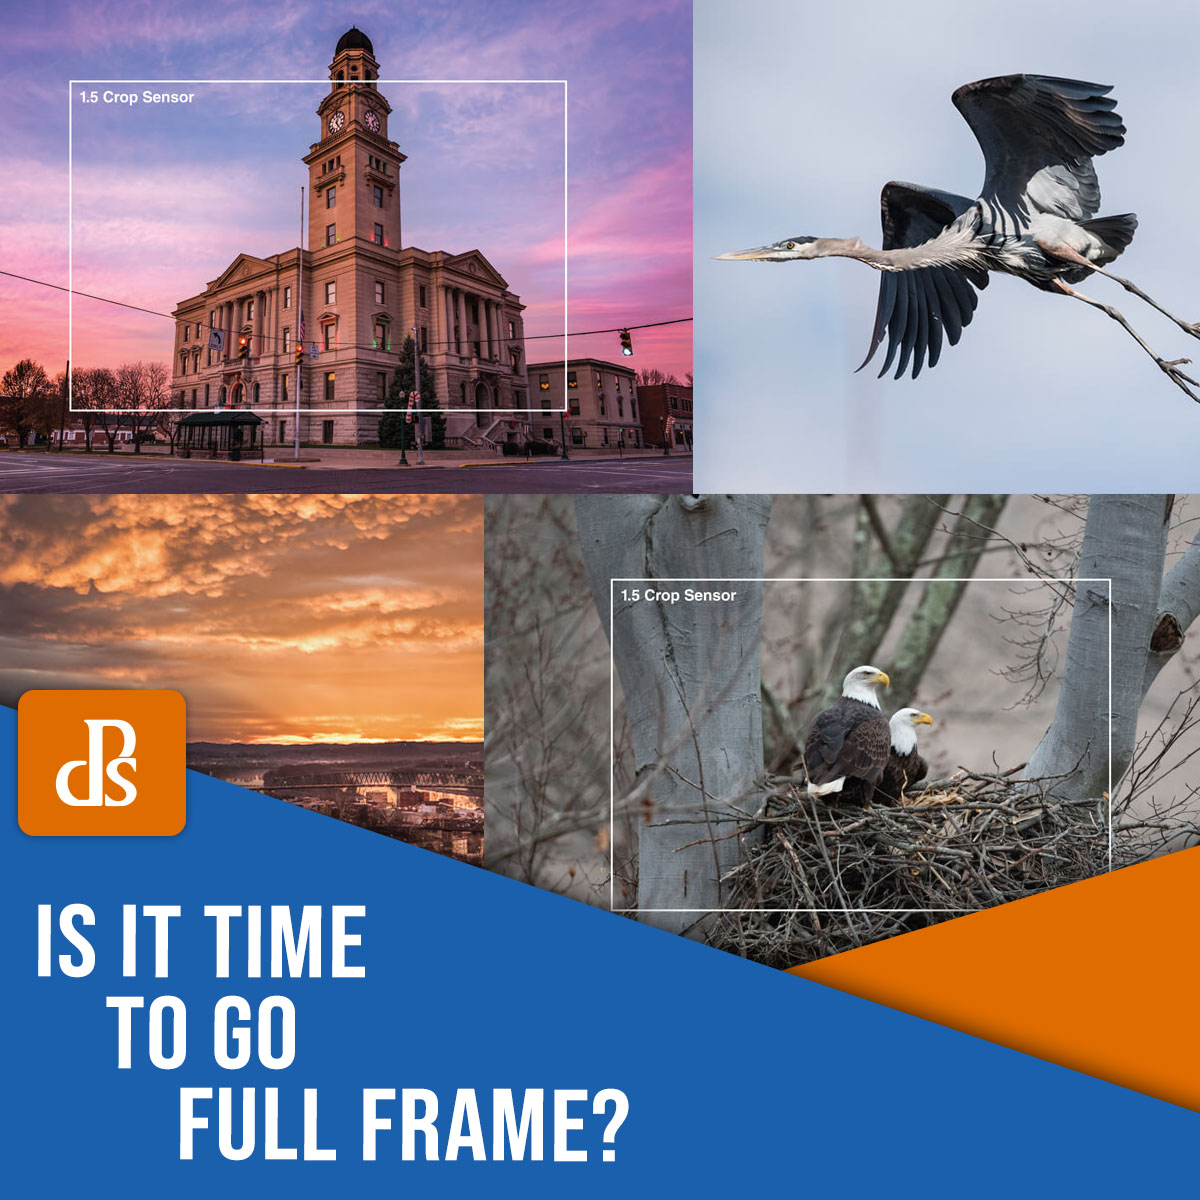 Is it time to go full frame?